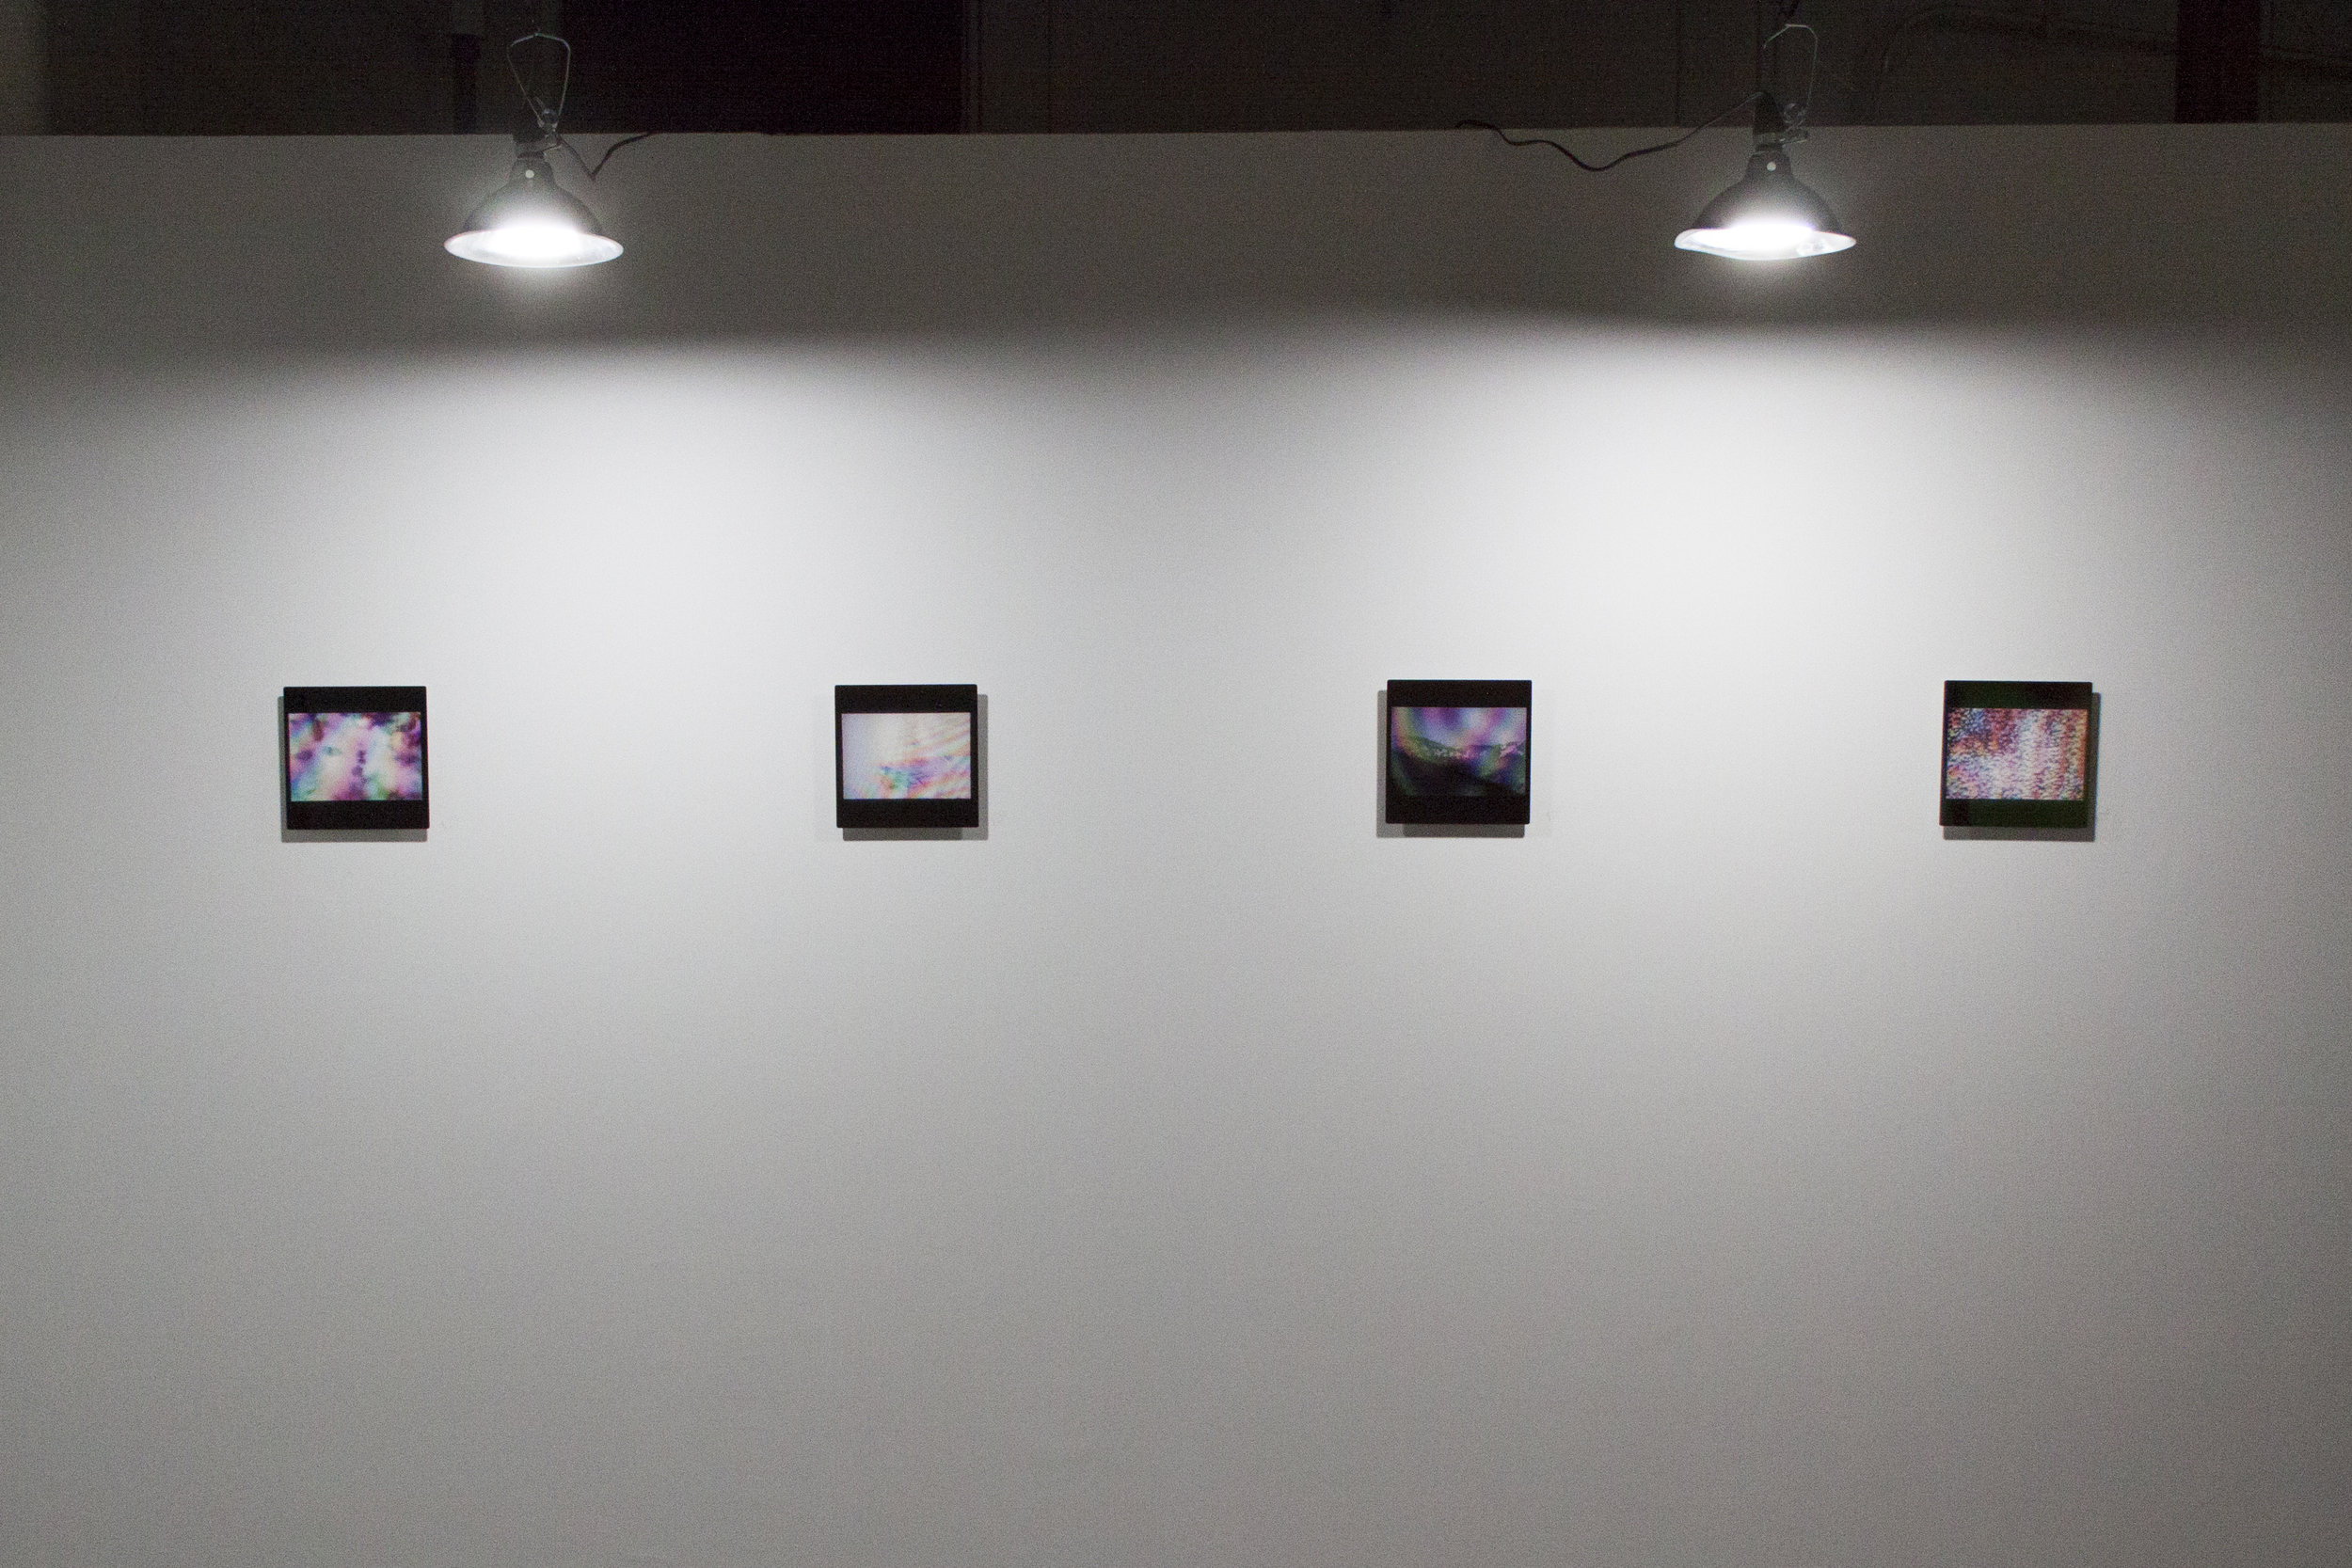 Installation view, Ephemera series